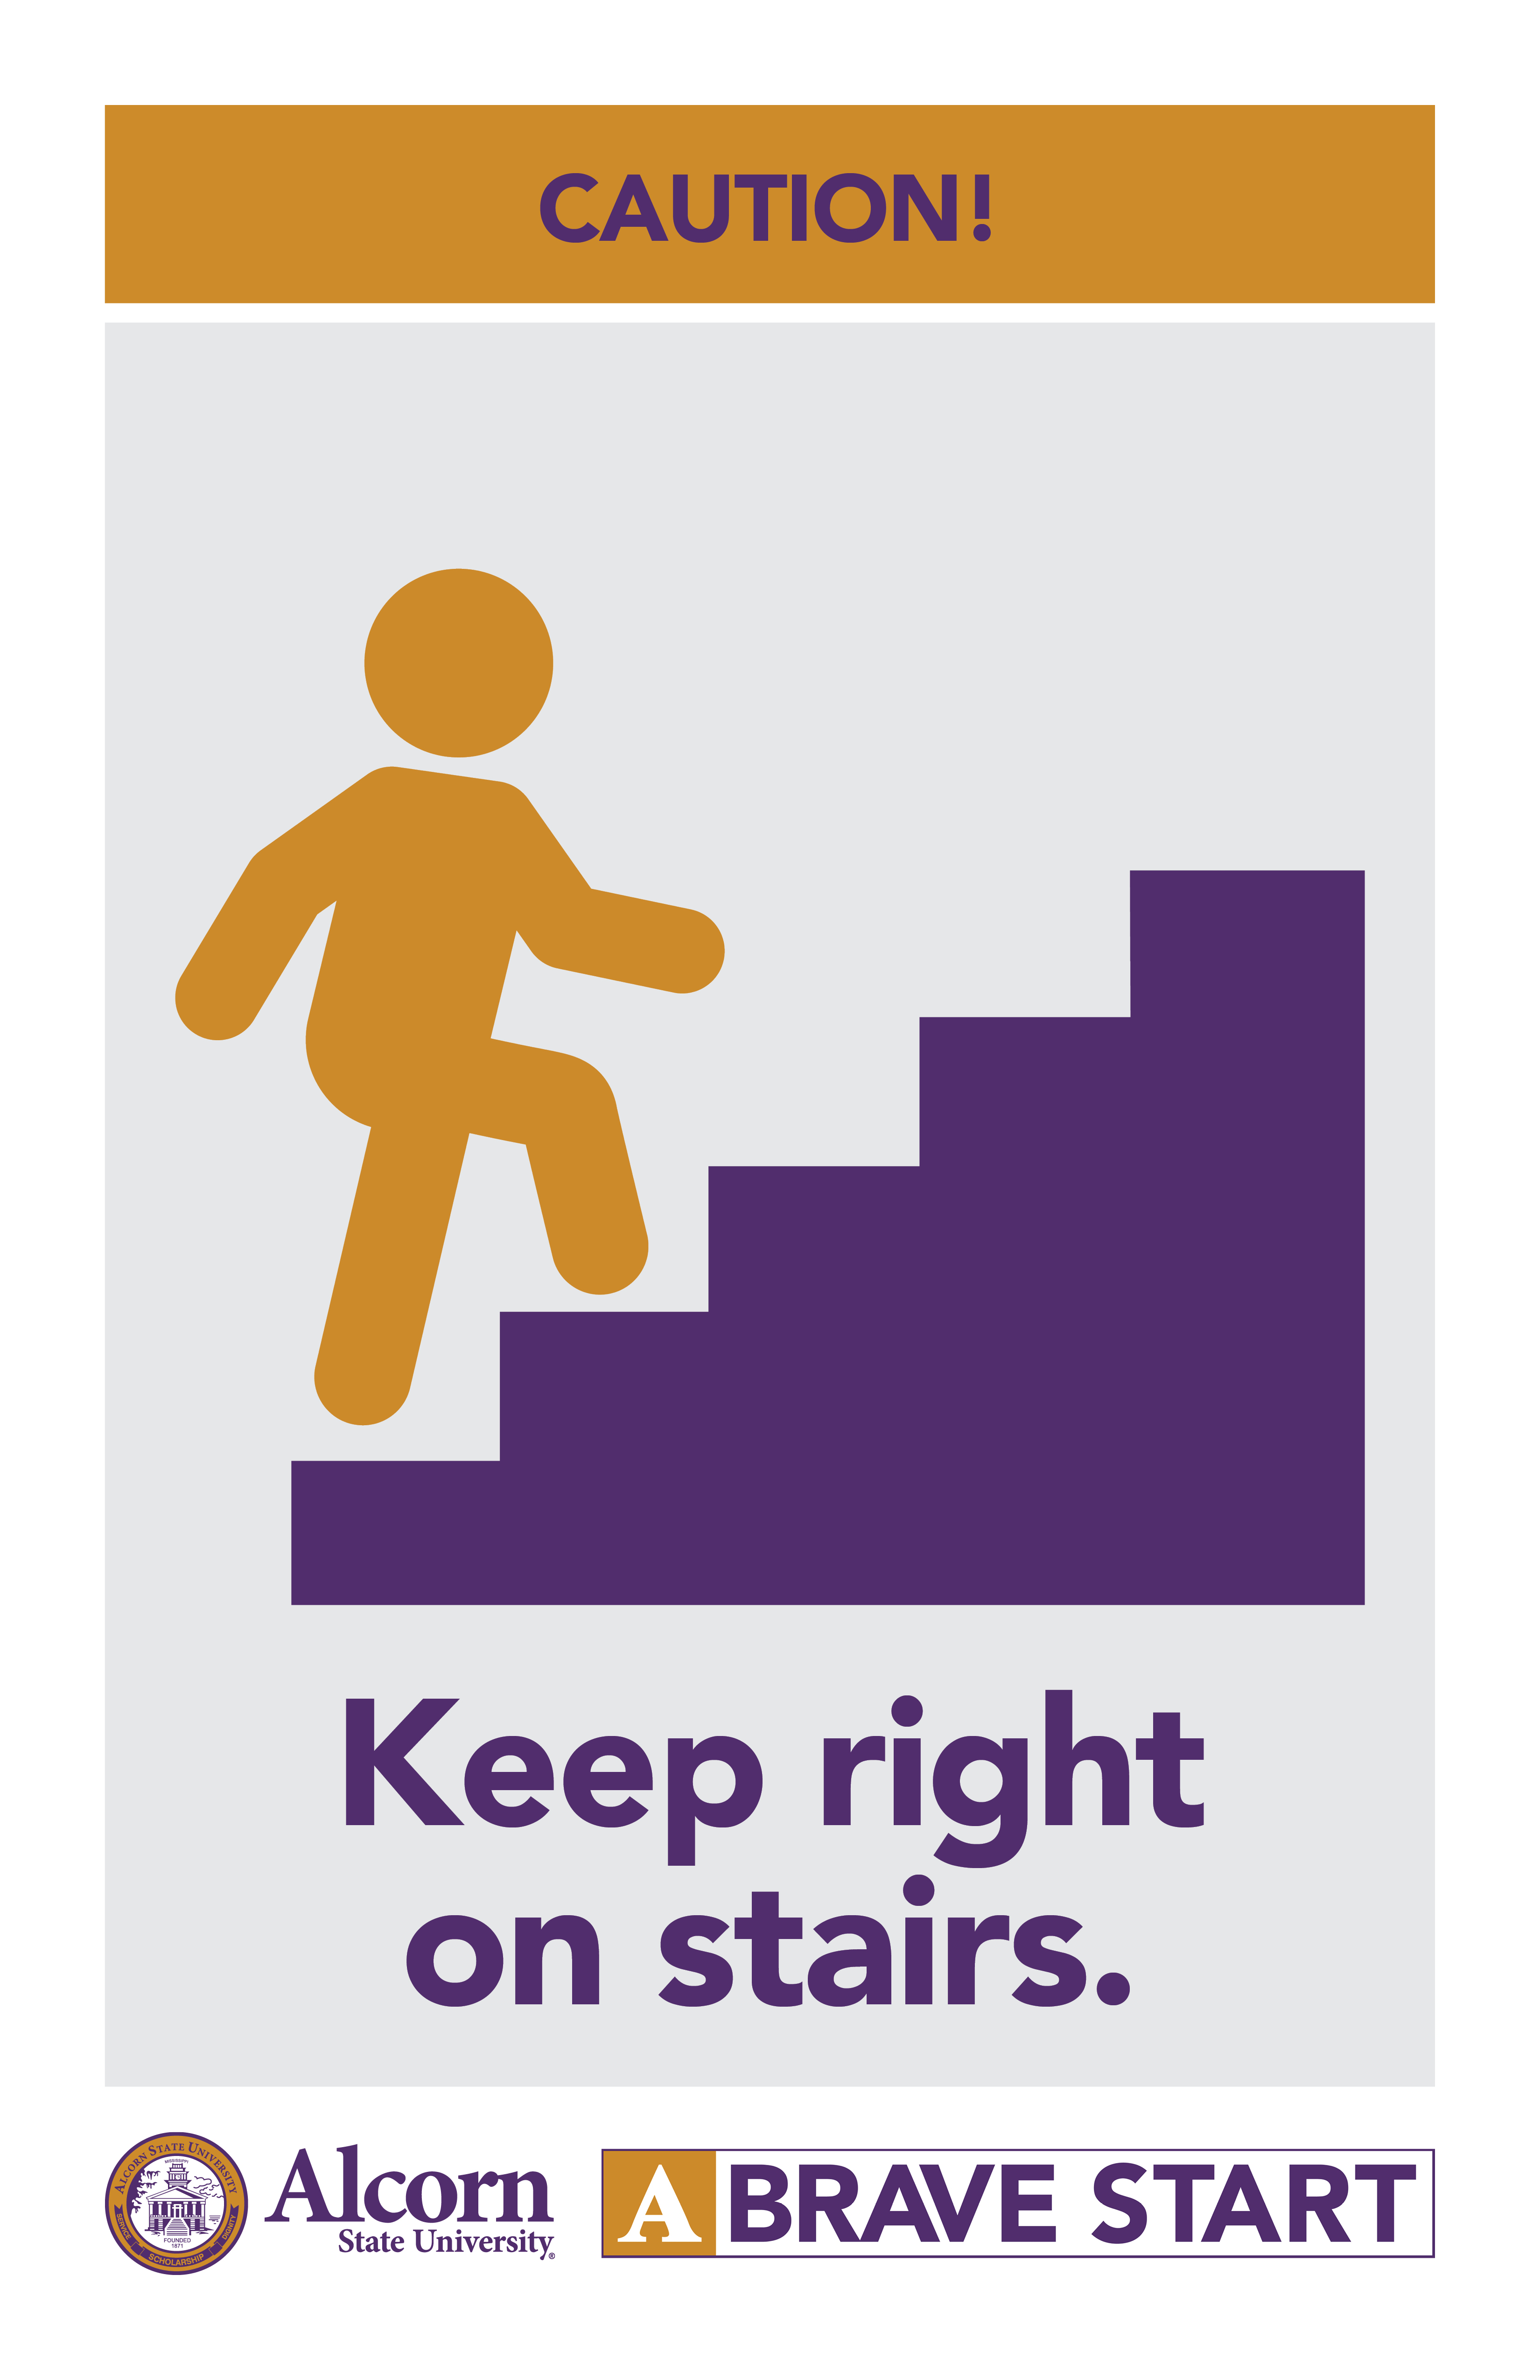 CAUTION! (Picture of a person walking up stairs) Keep right on stairs. (Alcorn logo mark. A Brave Start logo mark.)